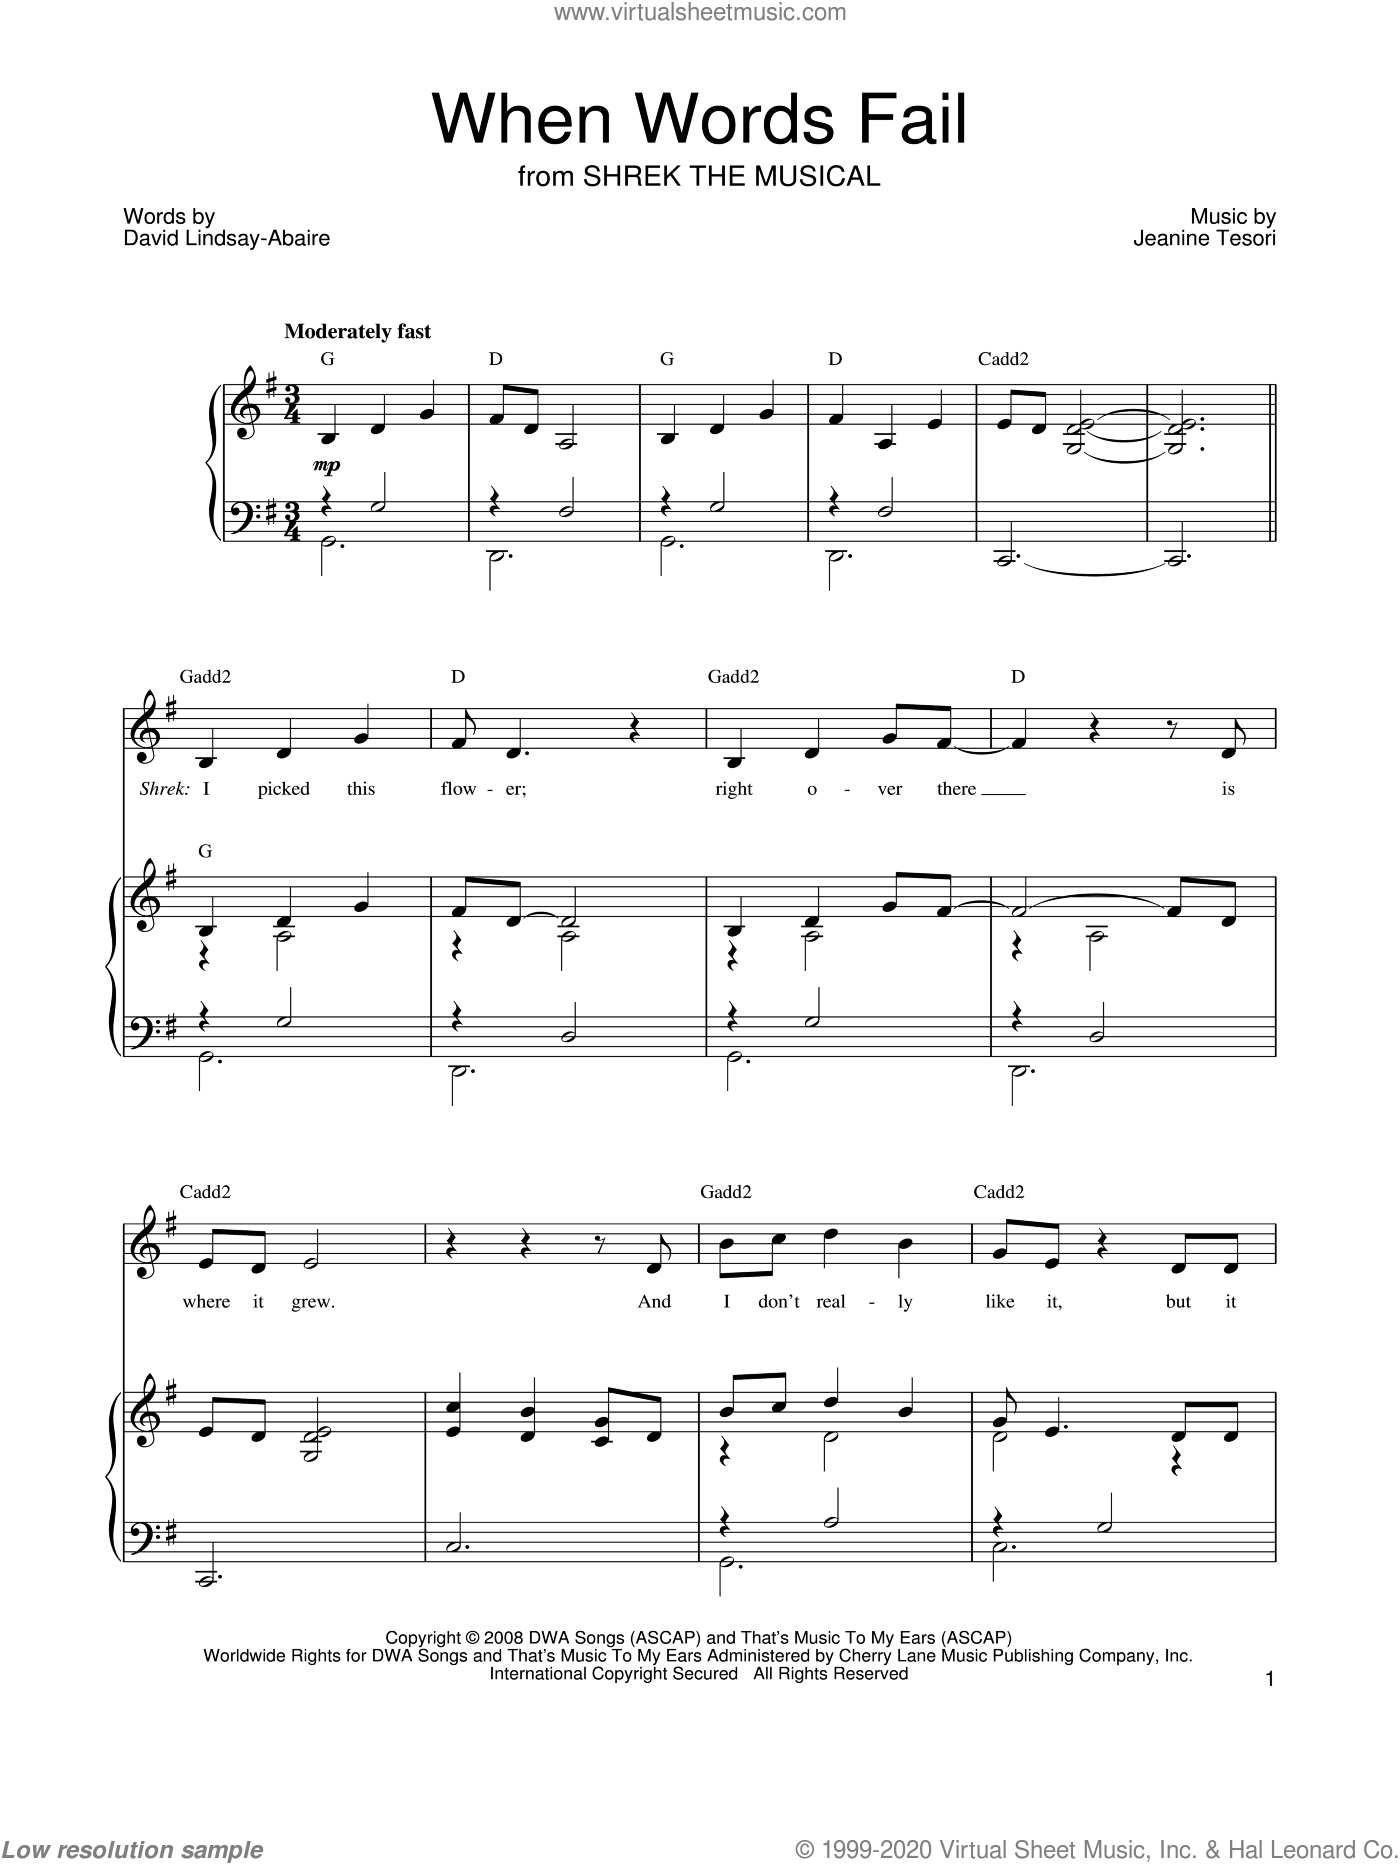 When Words Fail sheet music for voice, piano or guitar by Jeanine Tesori